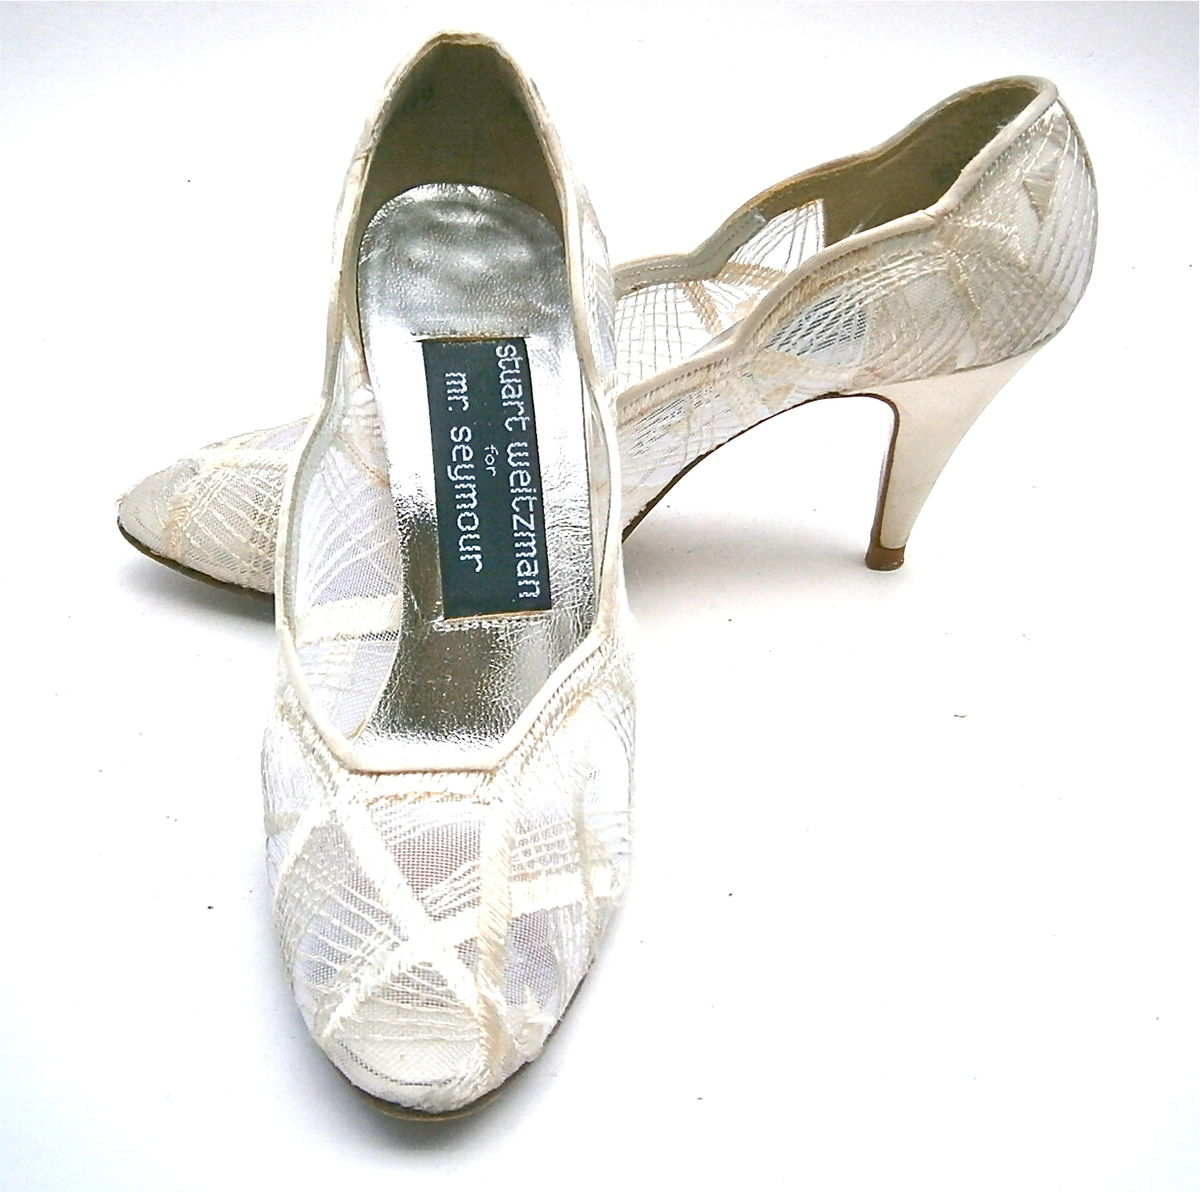 ... Vintage Ivory Ladies Shoes Size 4.5B Satin White Pumps High Heels  Stuart Weitzman Embroidery Mesh ... e9b9af34e168